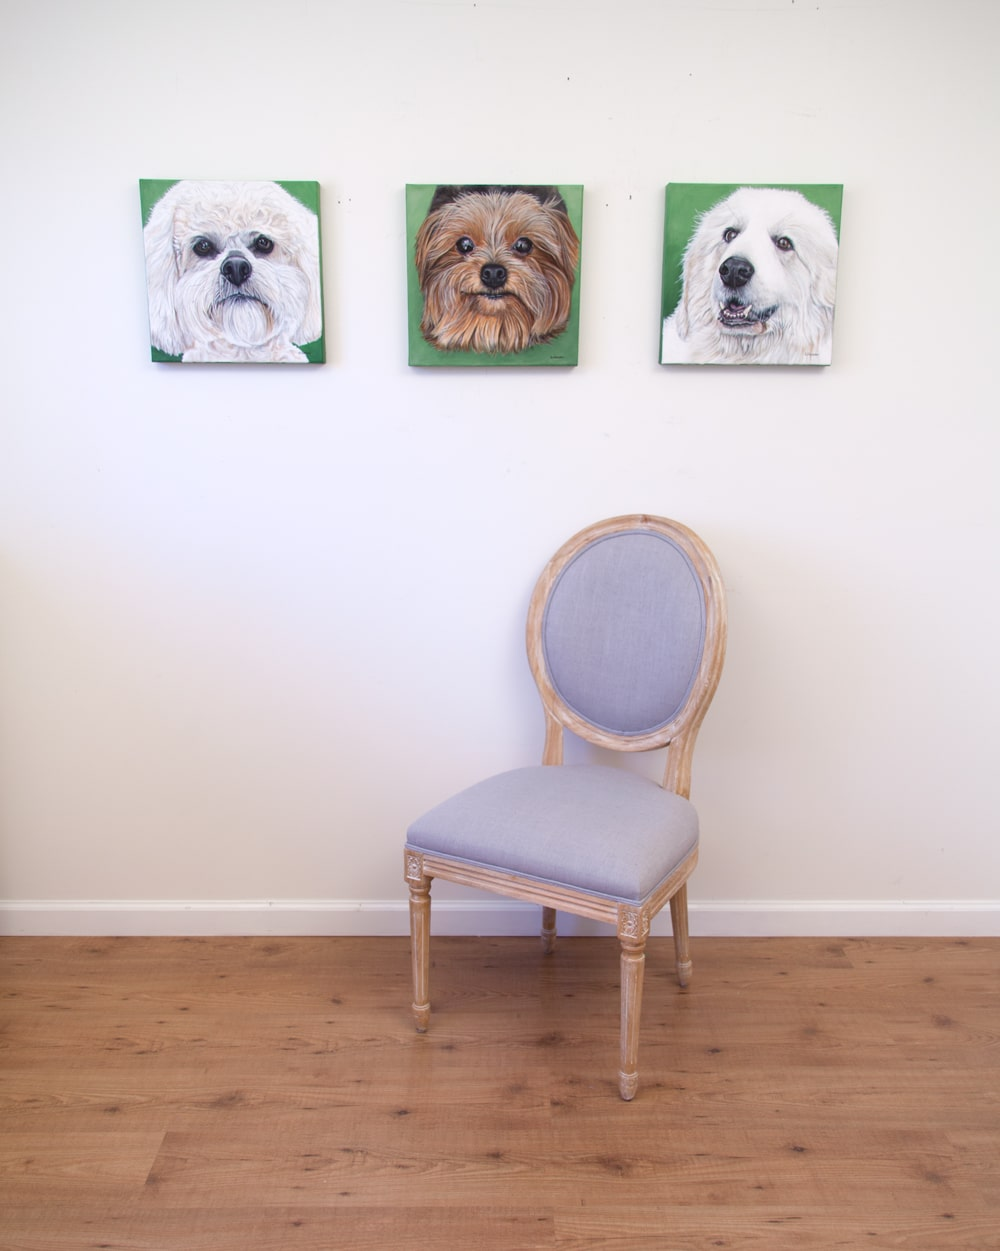 Boomer, Lexie and Sugar Bear - original acrylic paintings by Erica Eriksdotter